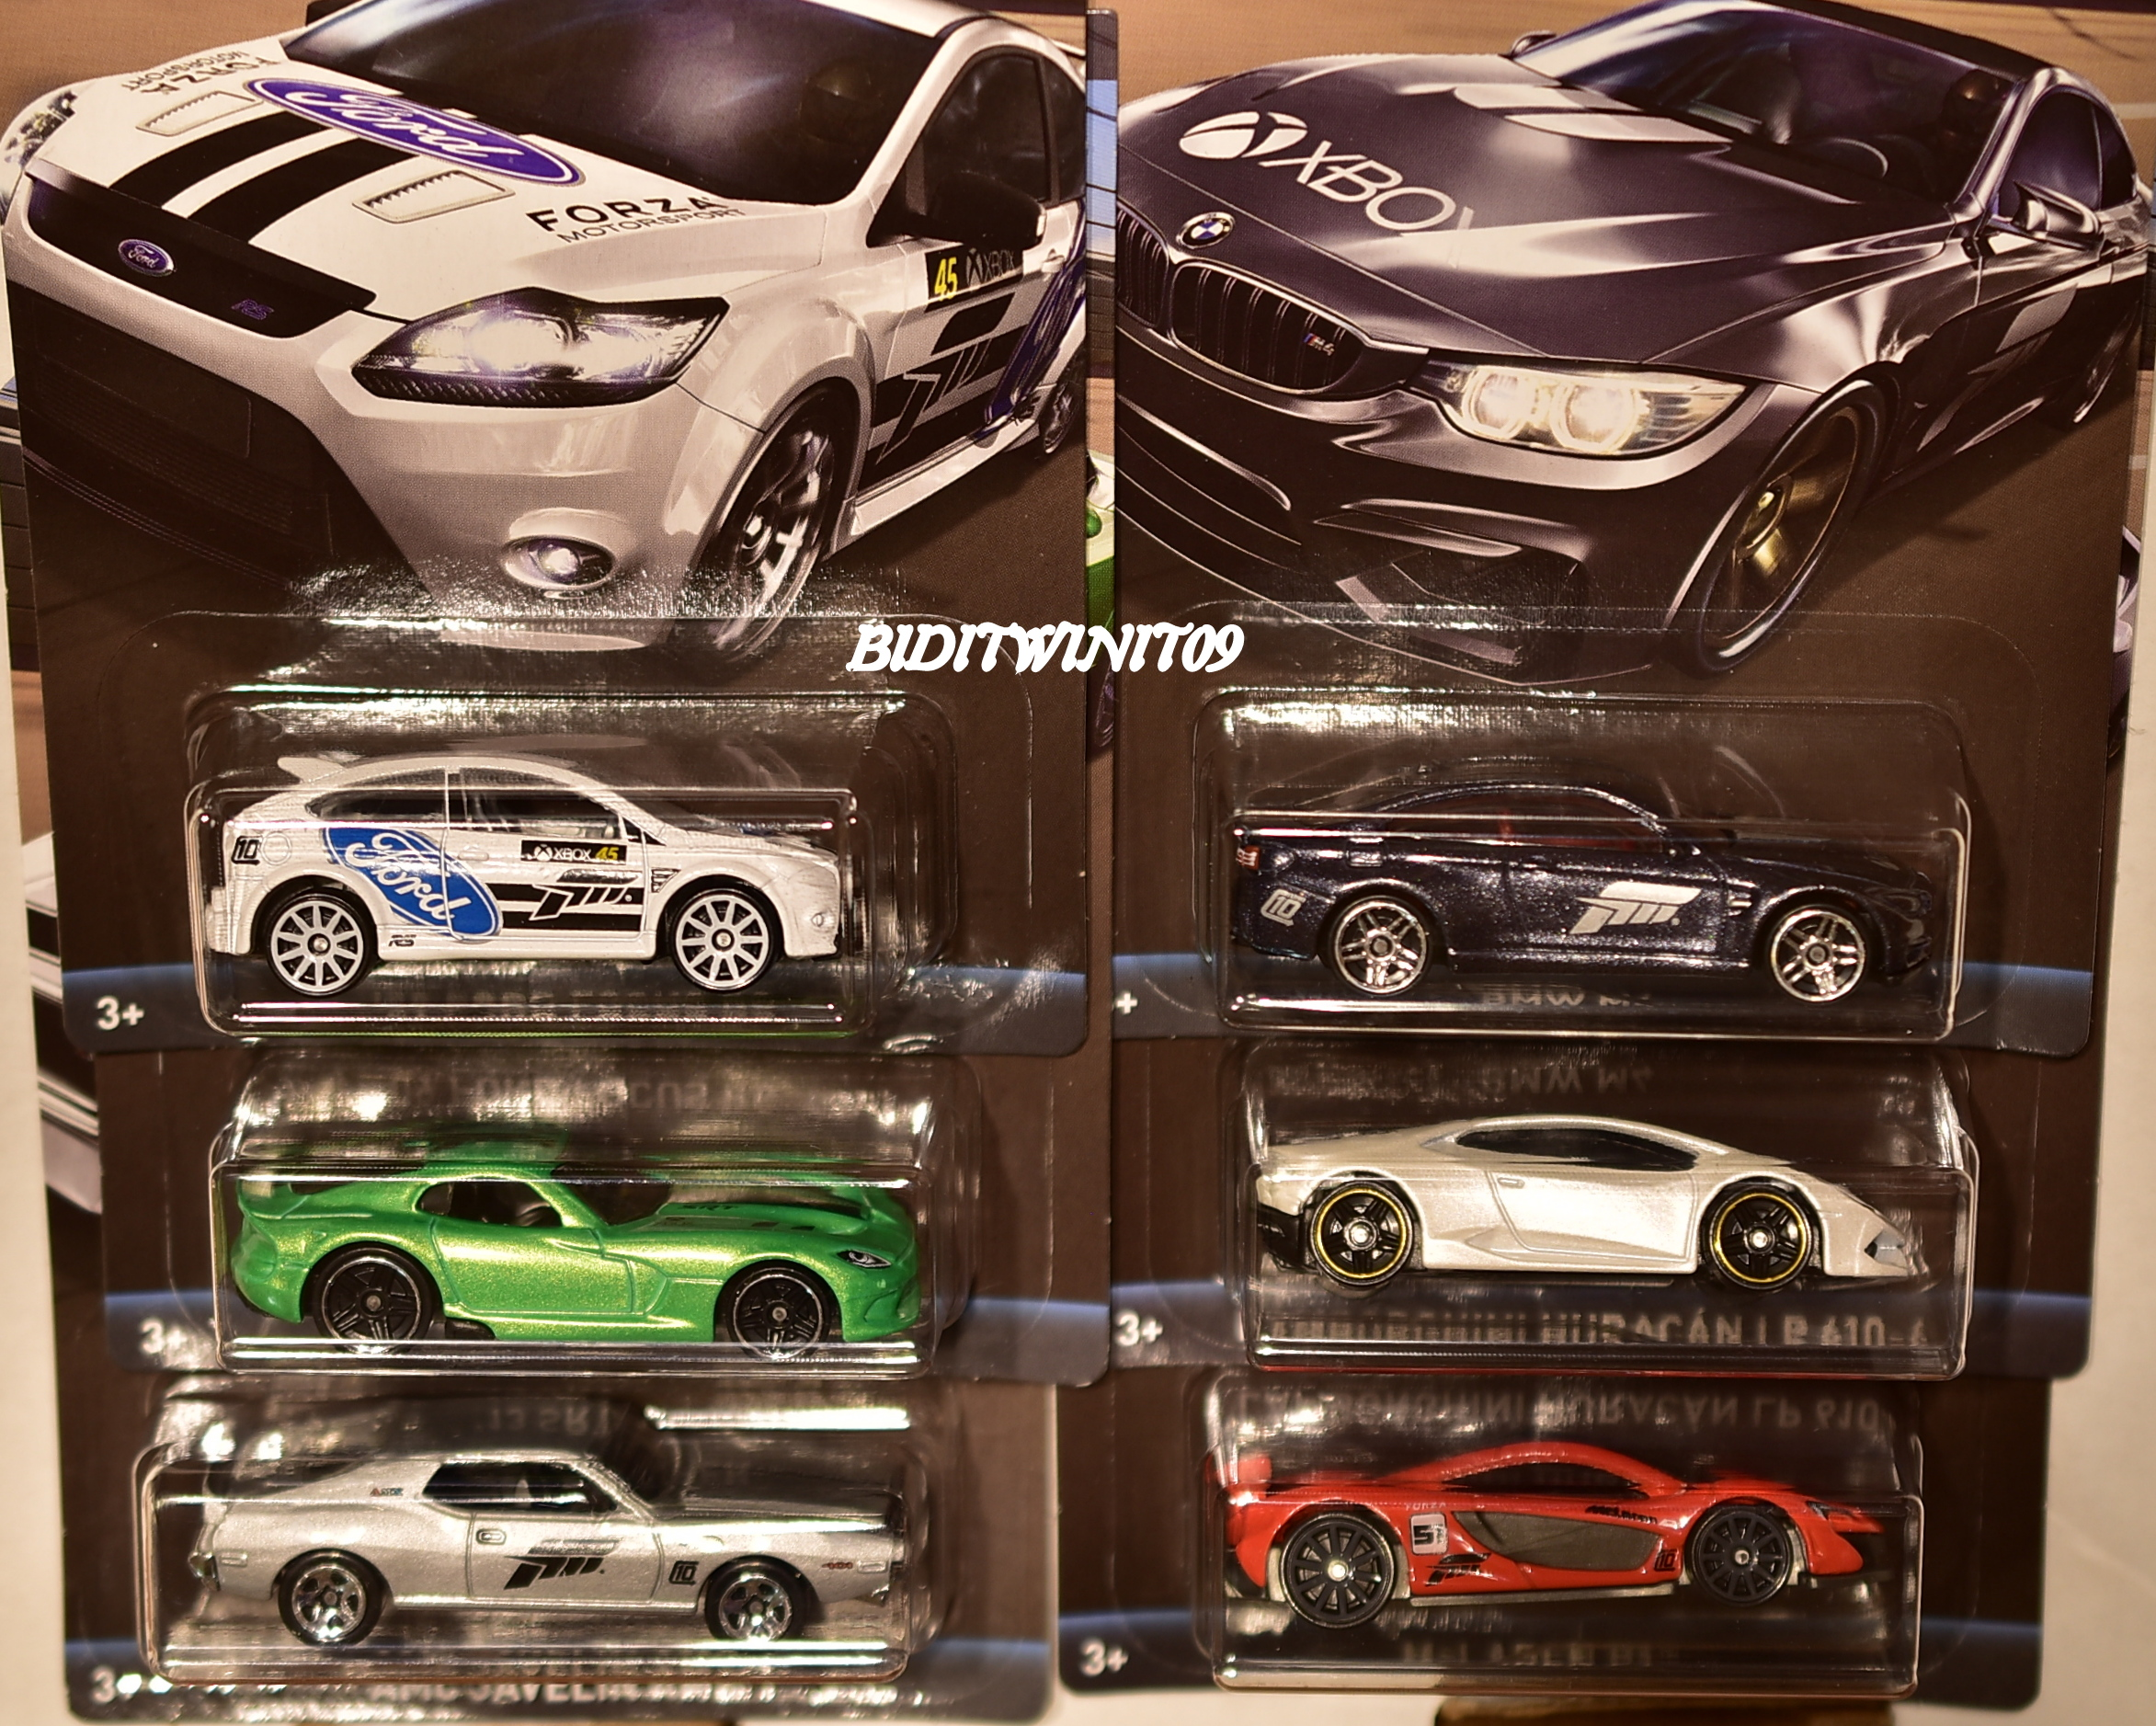 HOT WHEELS 2017 FORZA MOTORSPORT SET OF 6 MCLAGEN P1 - BMW M4 - LAMBORGHINI